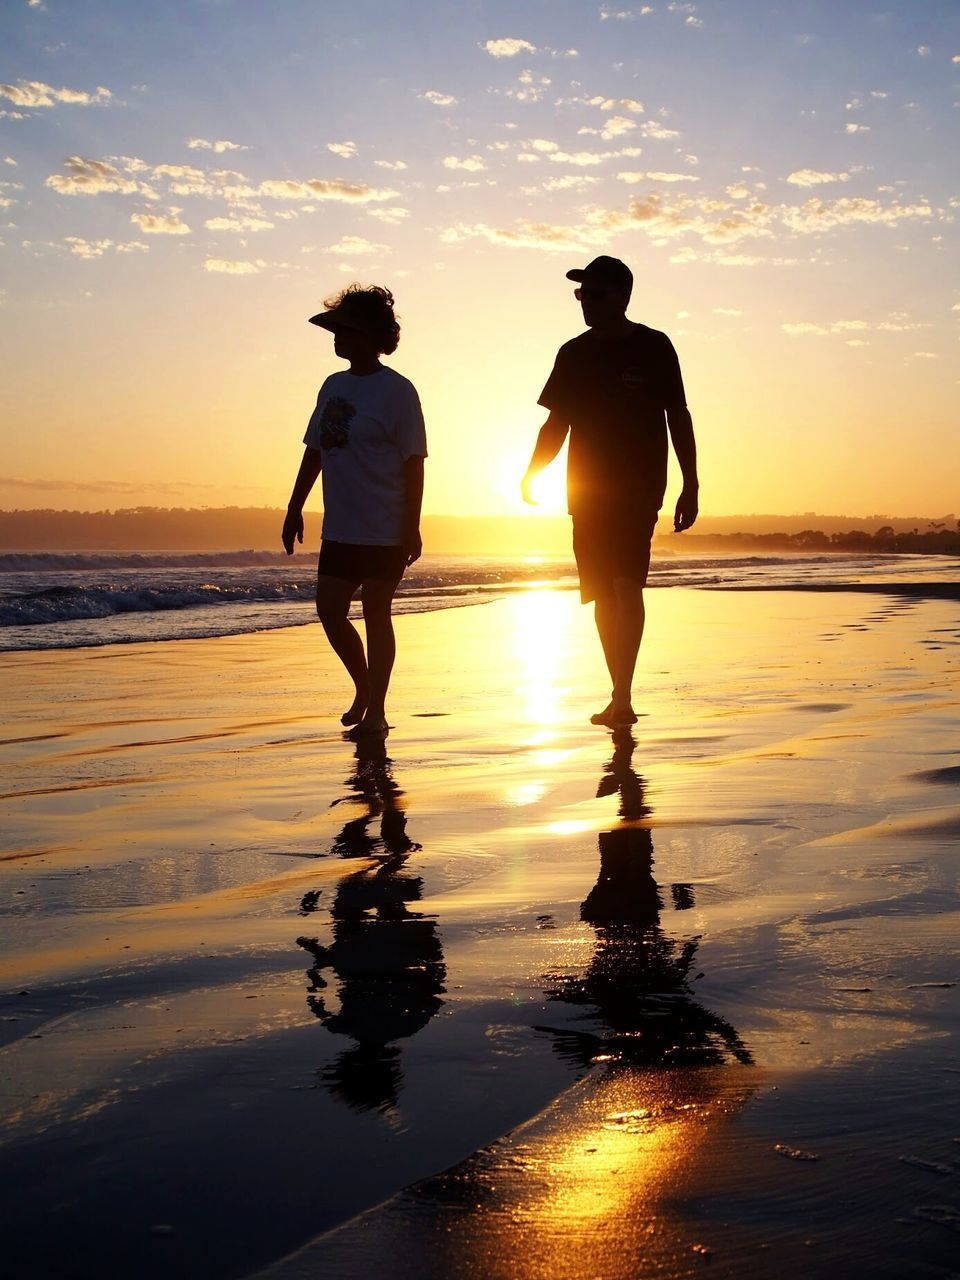 sunset, two people, sea, reflection, silhouette, water, beach, nature, sky, real people, beauty in nature, leisure activity, scenics, full length, men, standing, togetherness, horizon over water, sun, walking, vacations, love, tranquility, couple - relationship, lifestyles, sunlight, bonding, outdoors, women